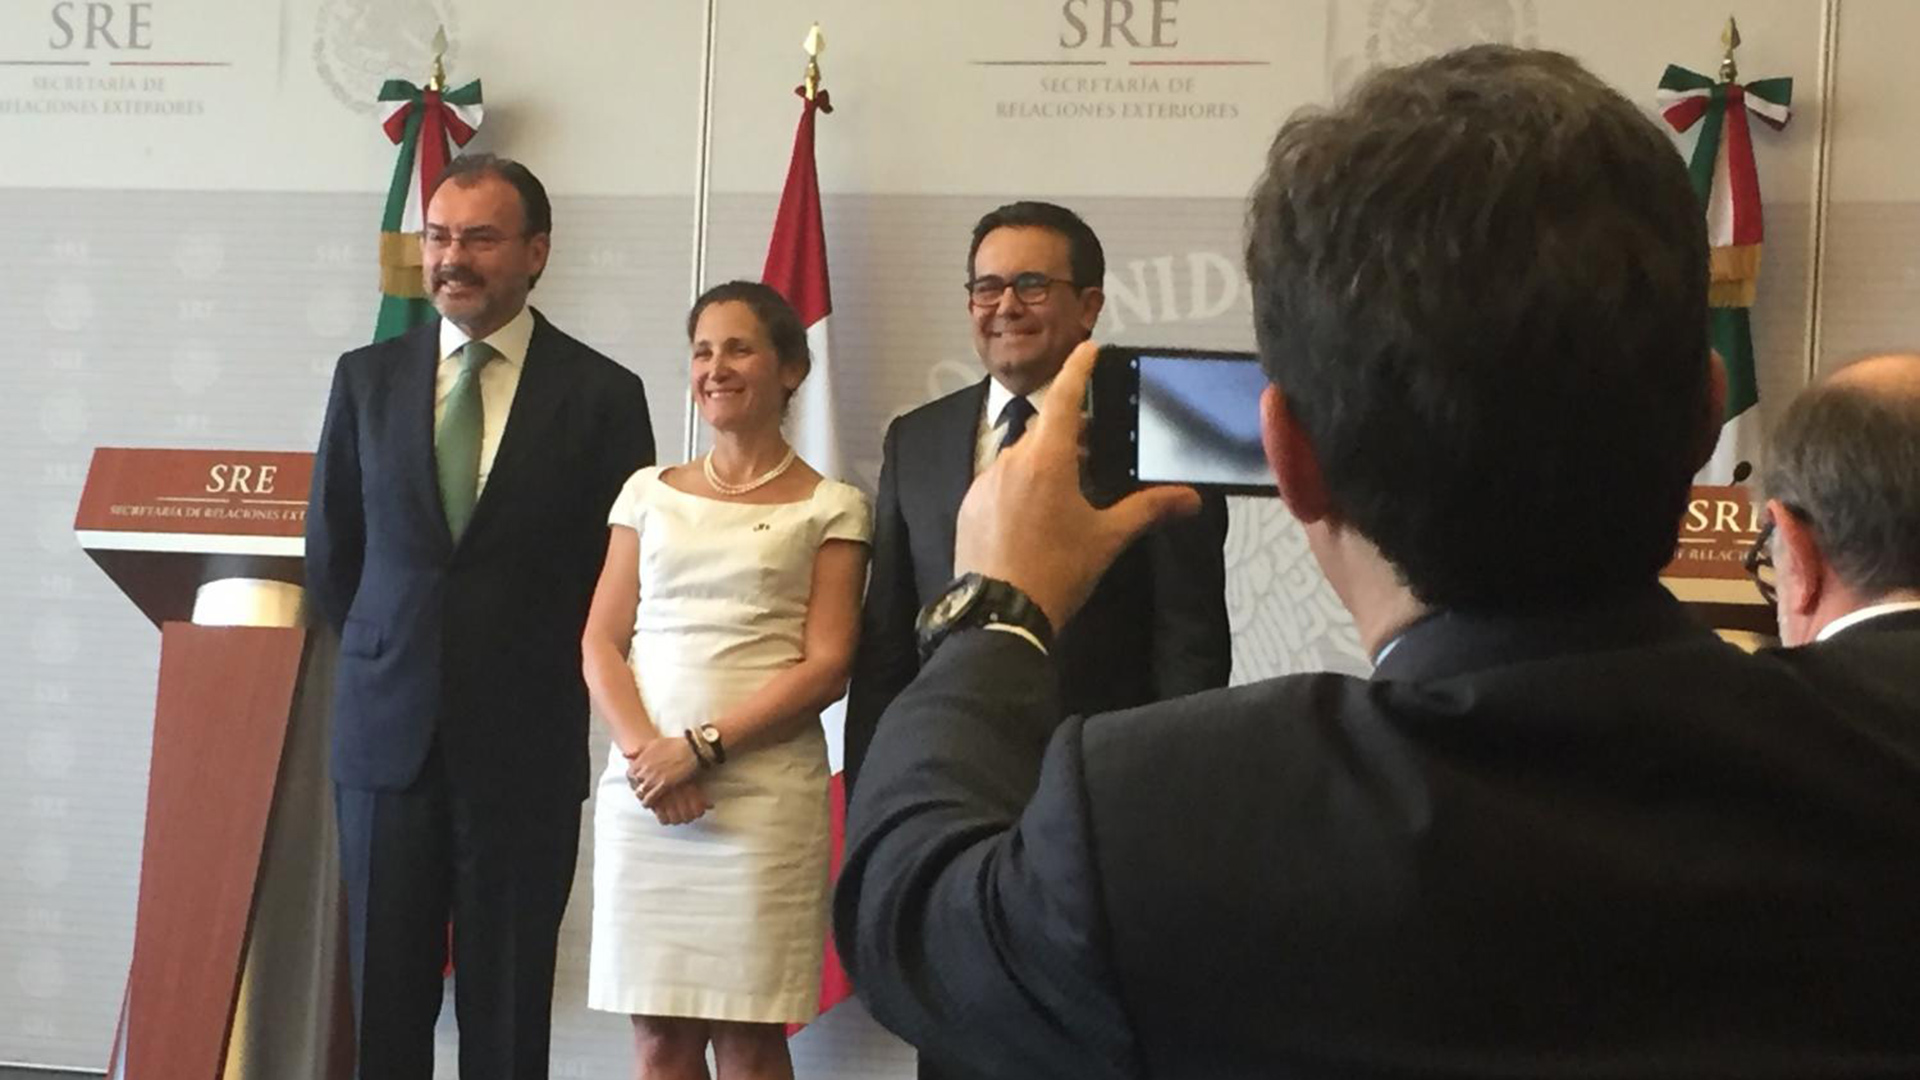 Luis Videgaray, the Mexican secretary of foreign affairs; Chrystia Freeland, Canada's minister of foreign affairs; and Ildefonso Guajardo, Mexico's secretary of economy, met in Mexico City to discuss NAFTA and other issues.